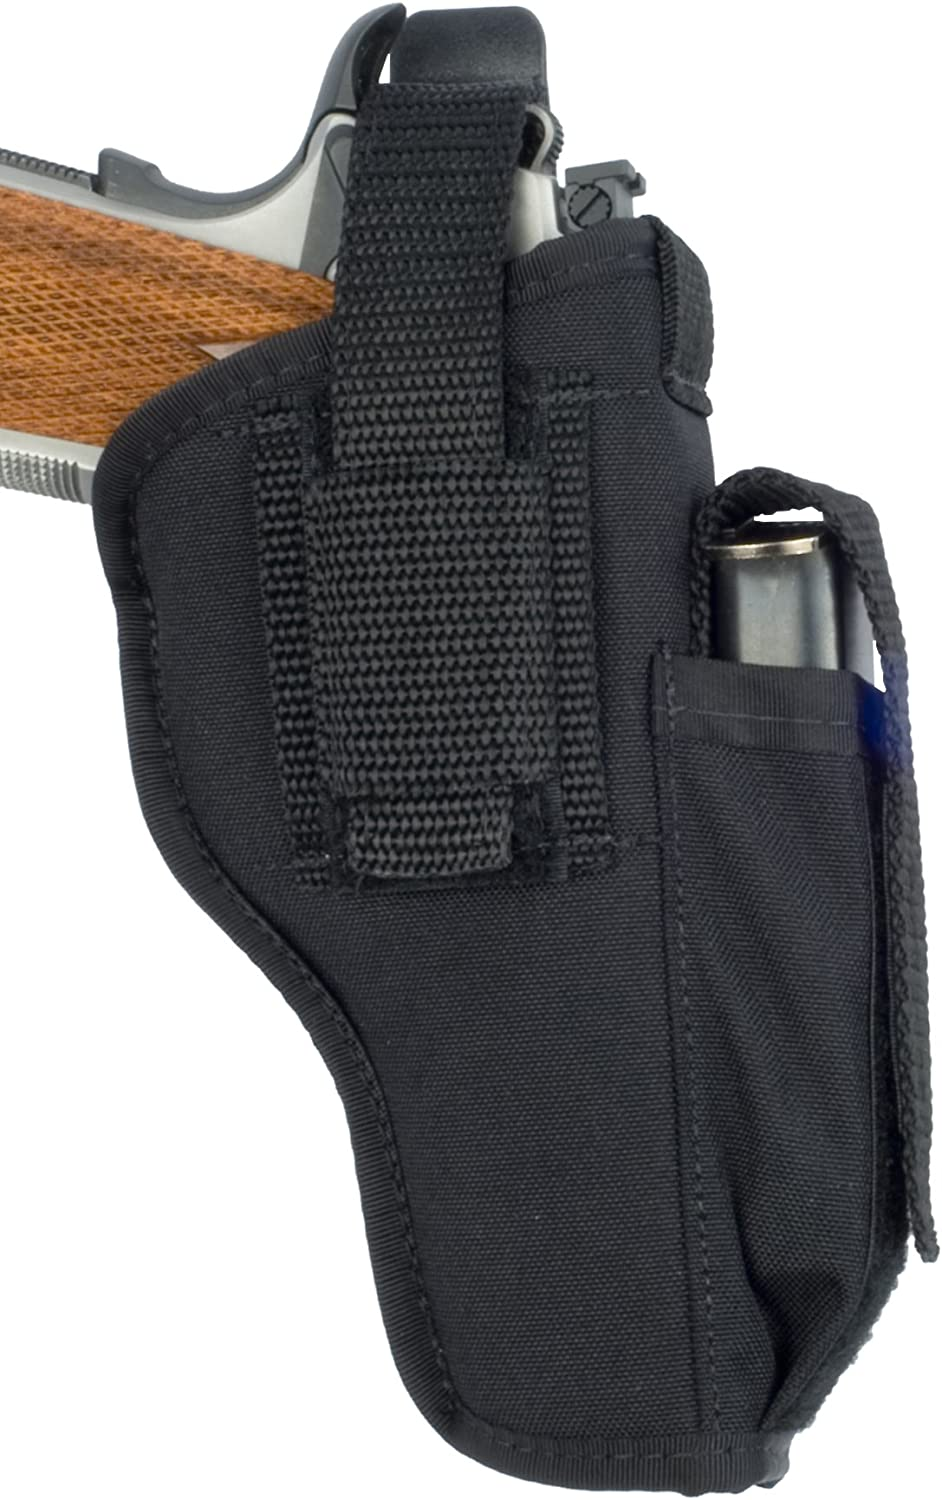 Soft Armor Ambidextrous Nylon Hip lowest price with Some reservation Gun Holster Molded Thumb